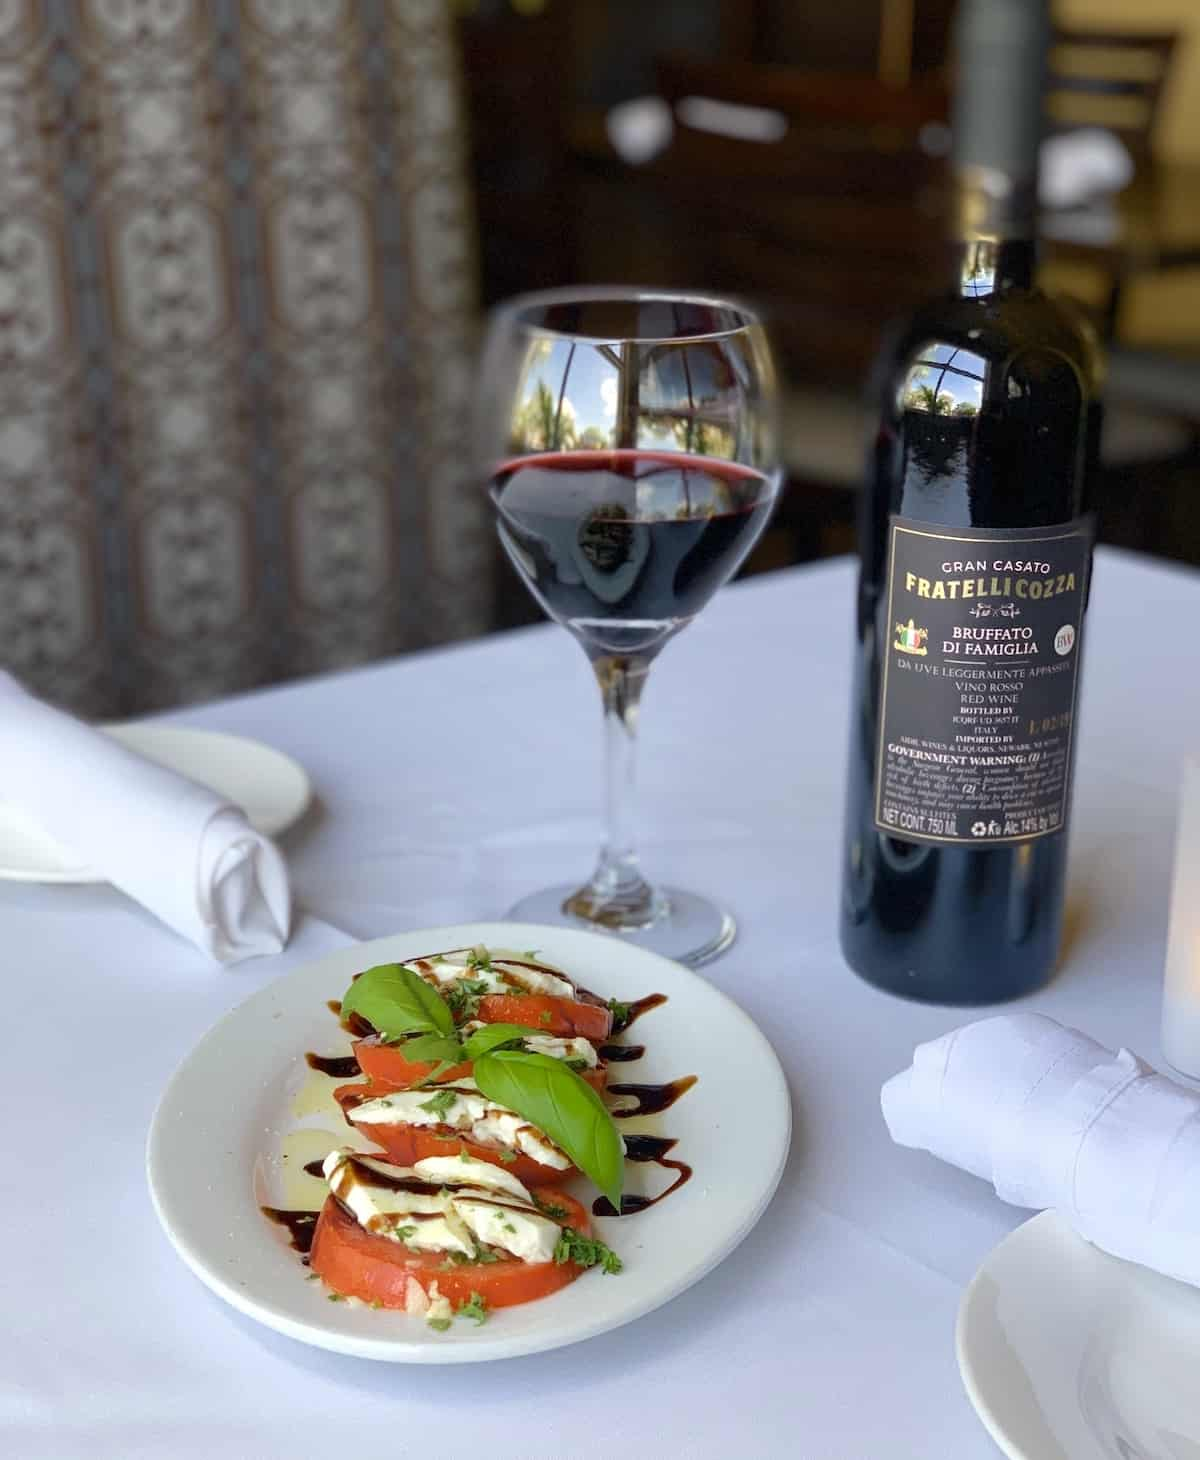 Tomato and mozzarella salad with a glass and bottle of wine in background.